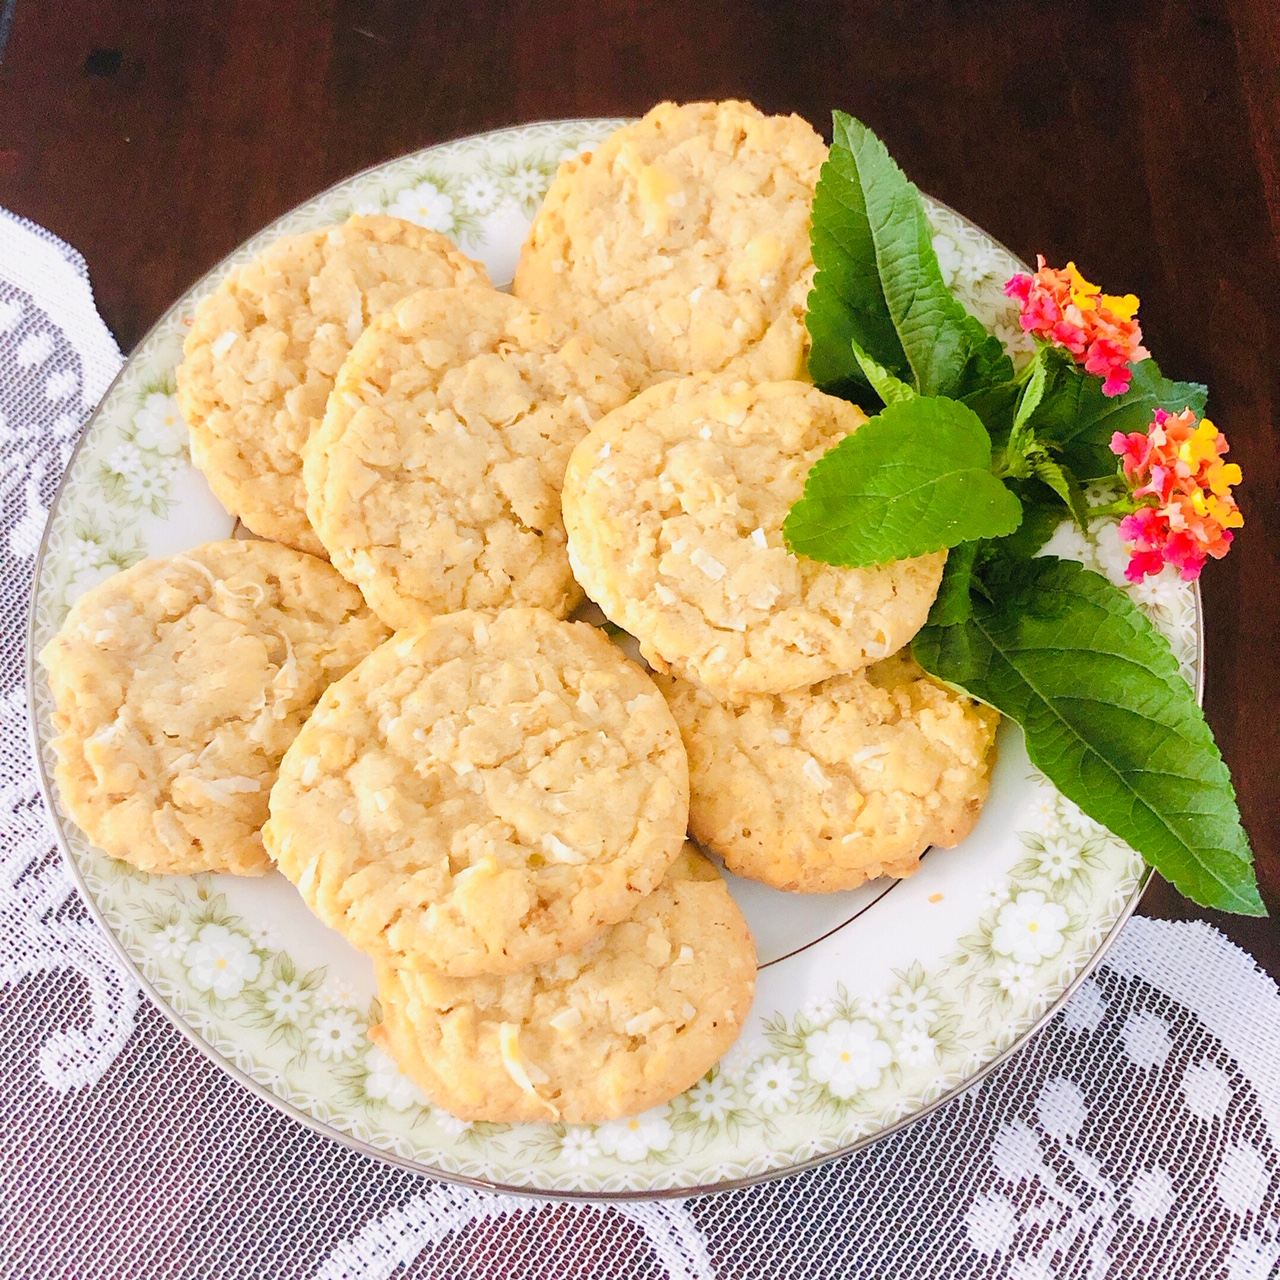 clear-the-cupboard-cookies-recipe-heather-lucilles-kitchen-food-blog